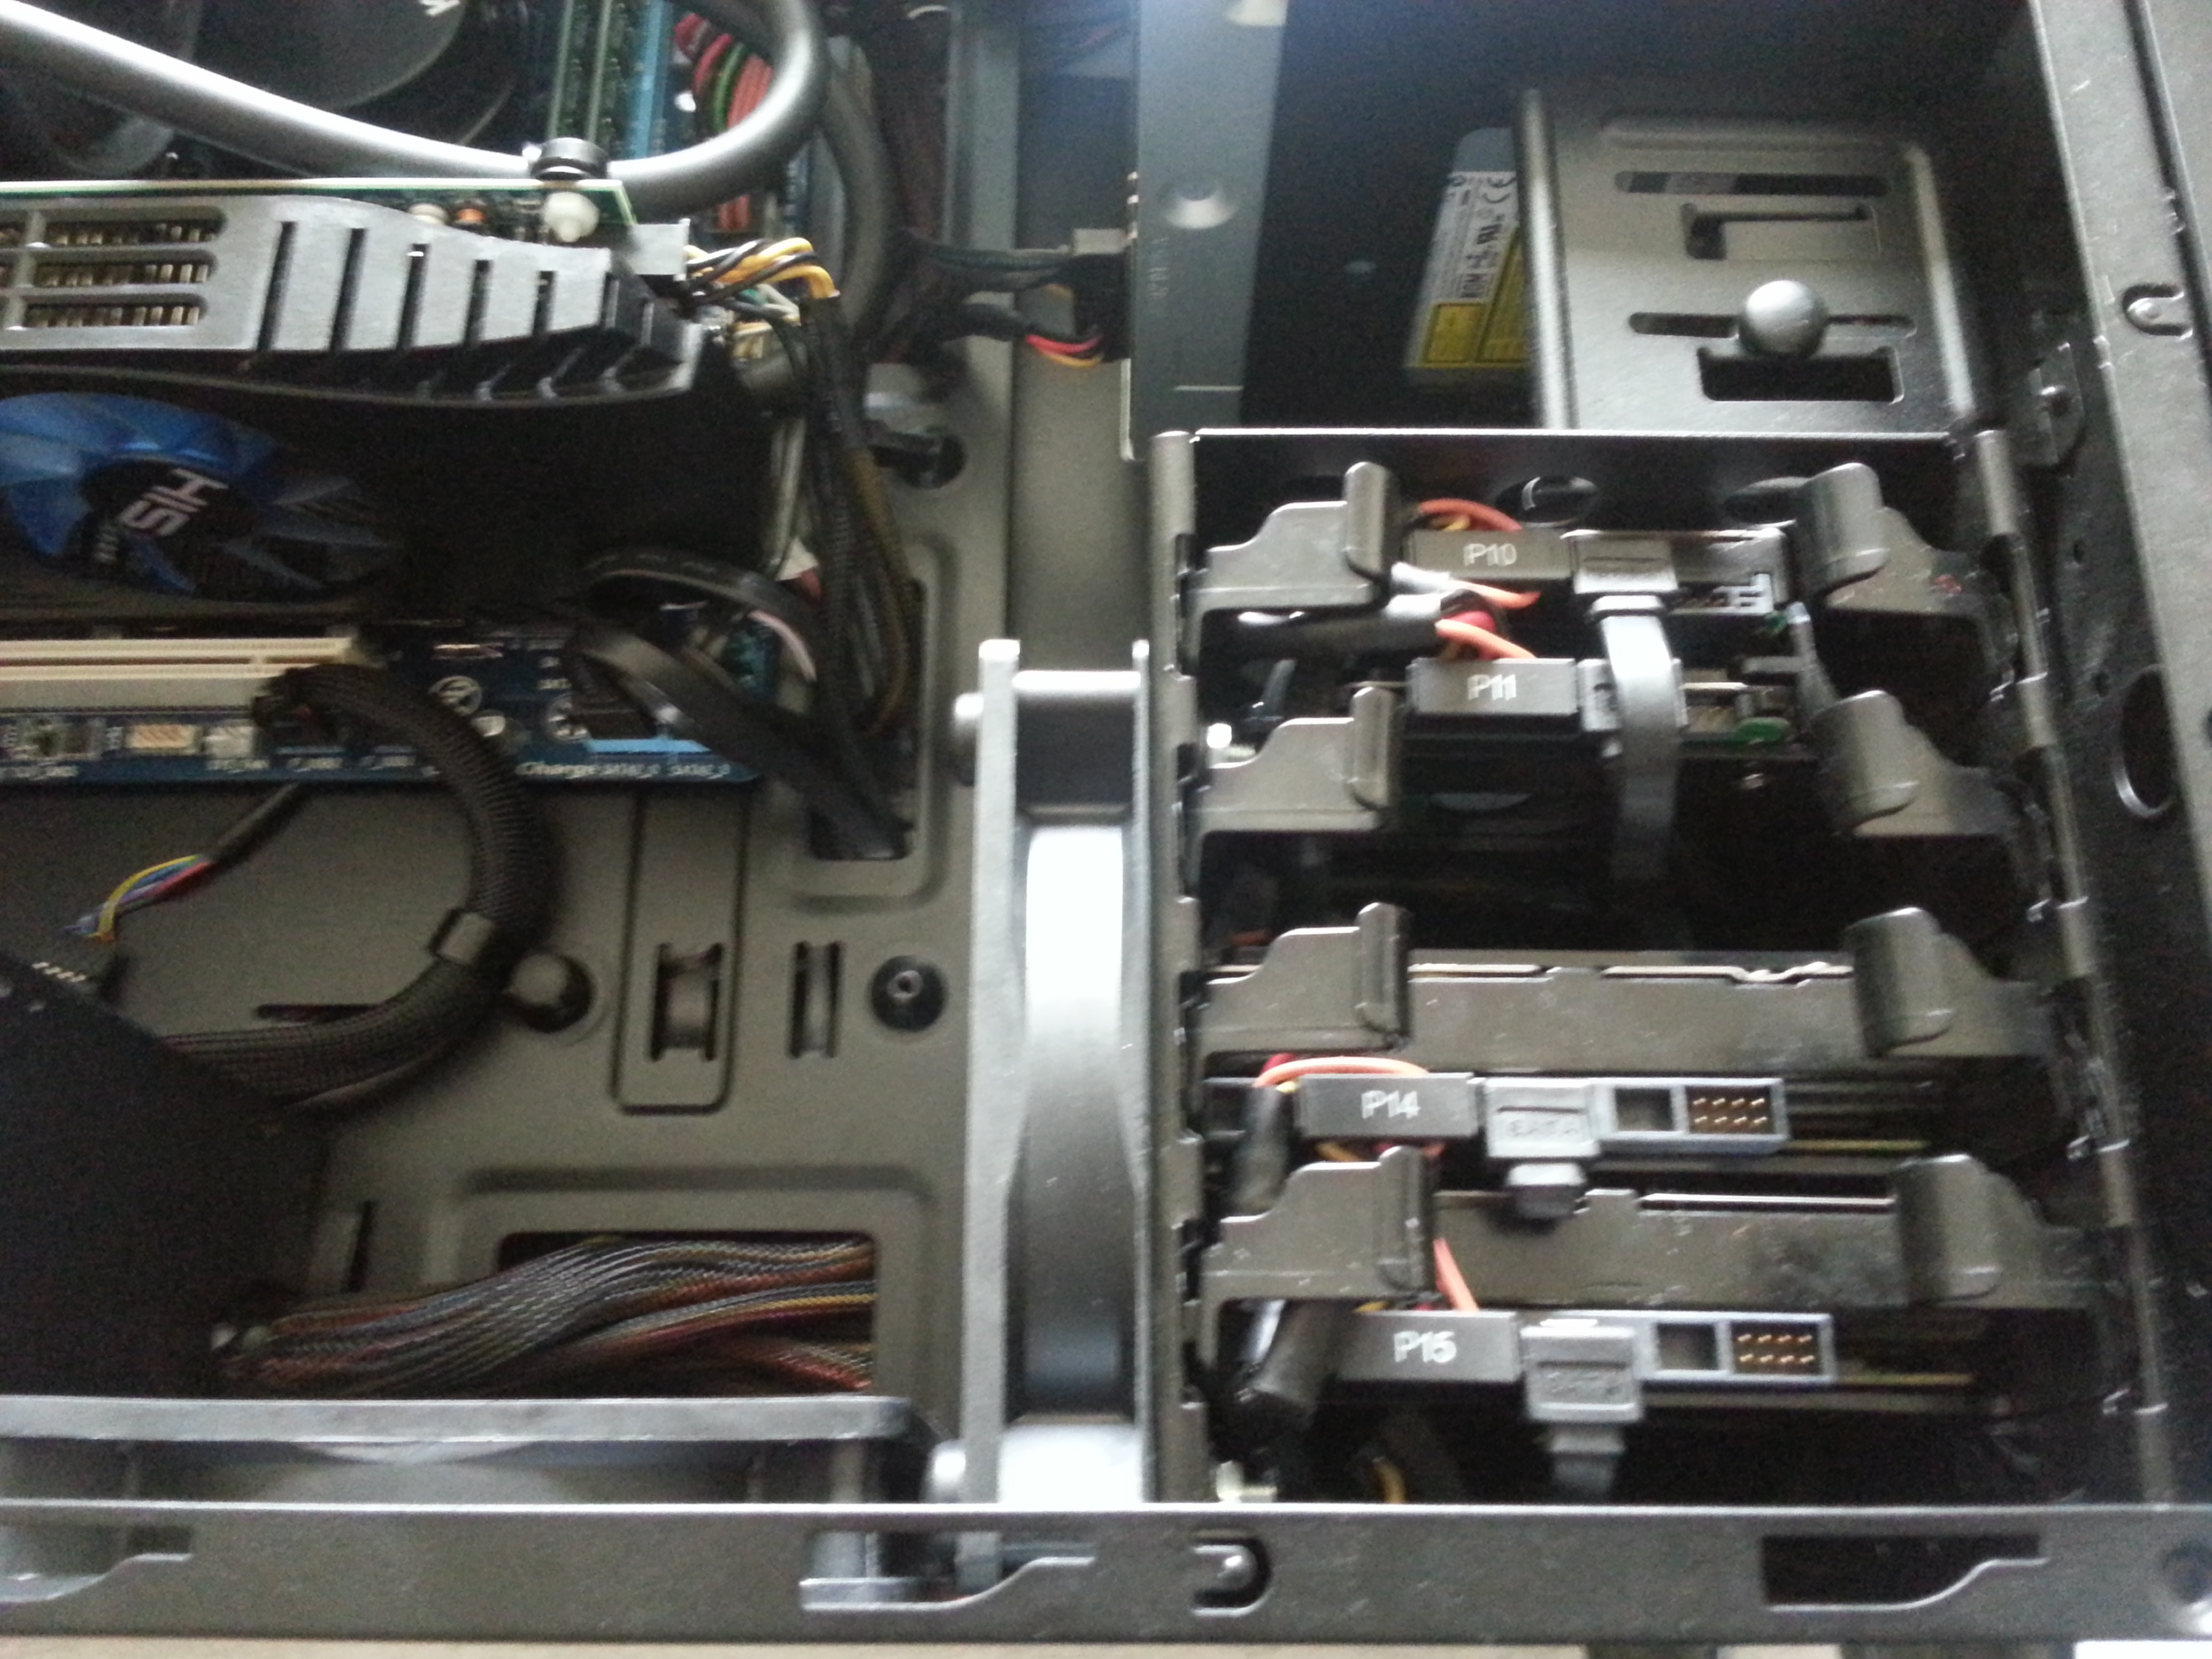 """HDD cage contains 2x 3½"""" 7200 S-ATA II drives (Windows 7 drive, Windows 8 drive) and 1x 2½ S-ATA II (applications, games drive) and 1x S-ATA I 2"""" (media drive)"""